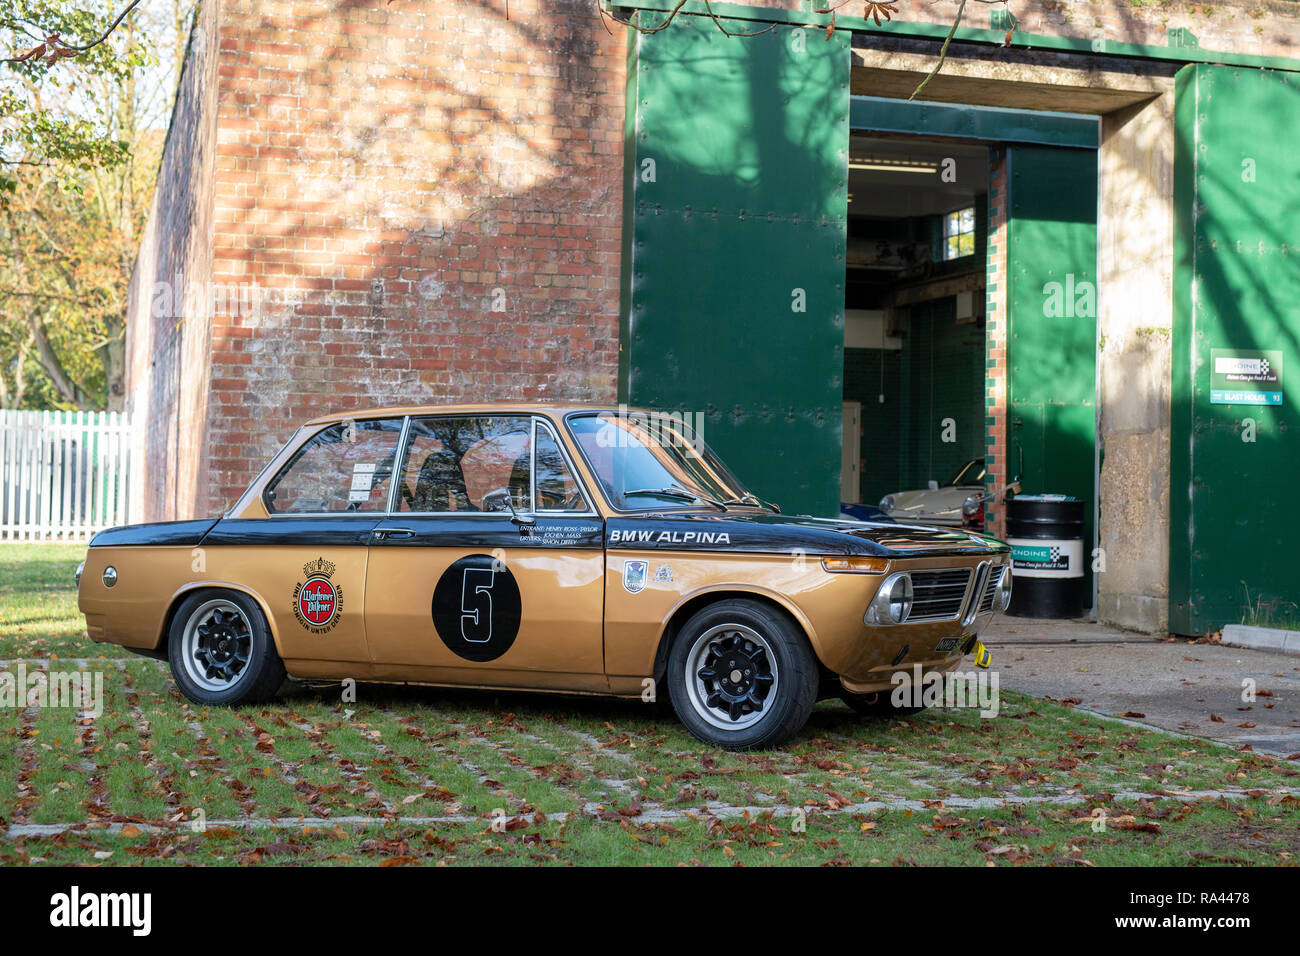 1972 BMW 2002 at Bicester heritage centre autumn sunday scramble event. Bicester, Oxfordshire, UK - Stock Image